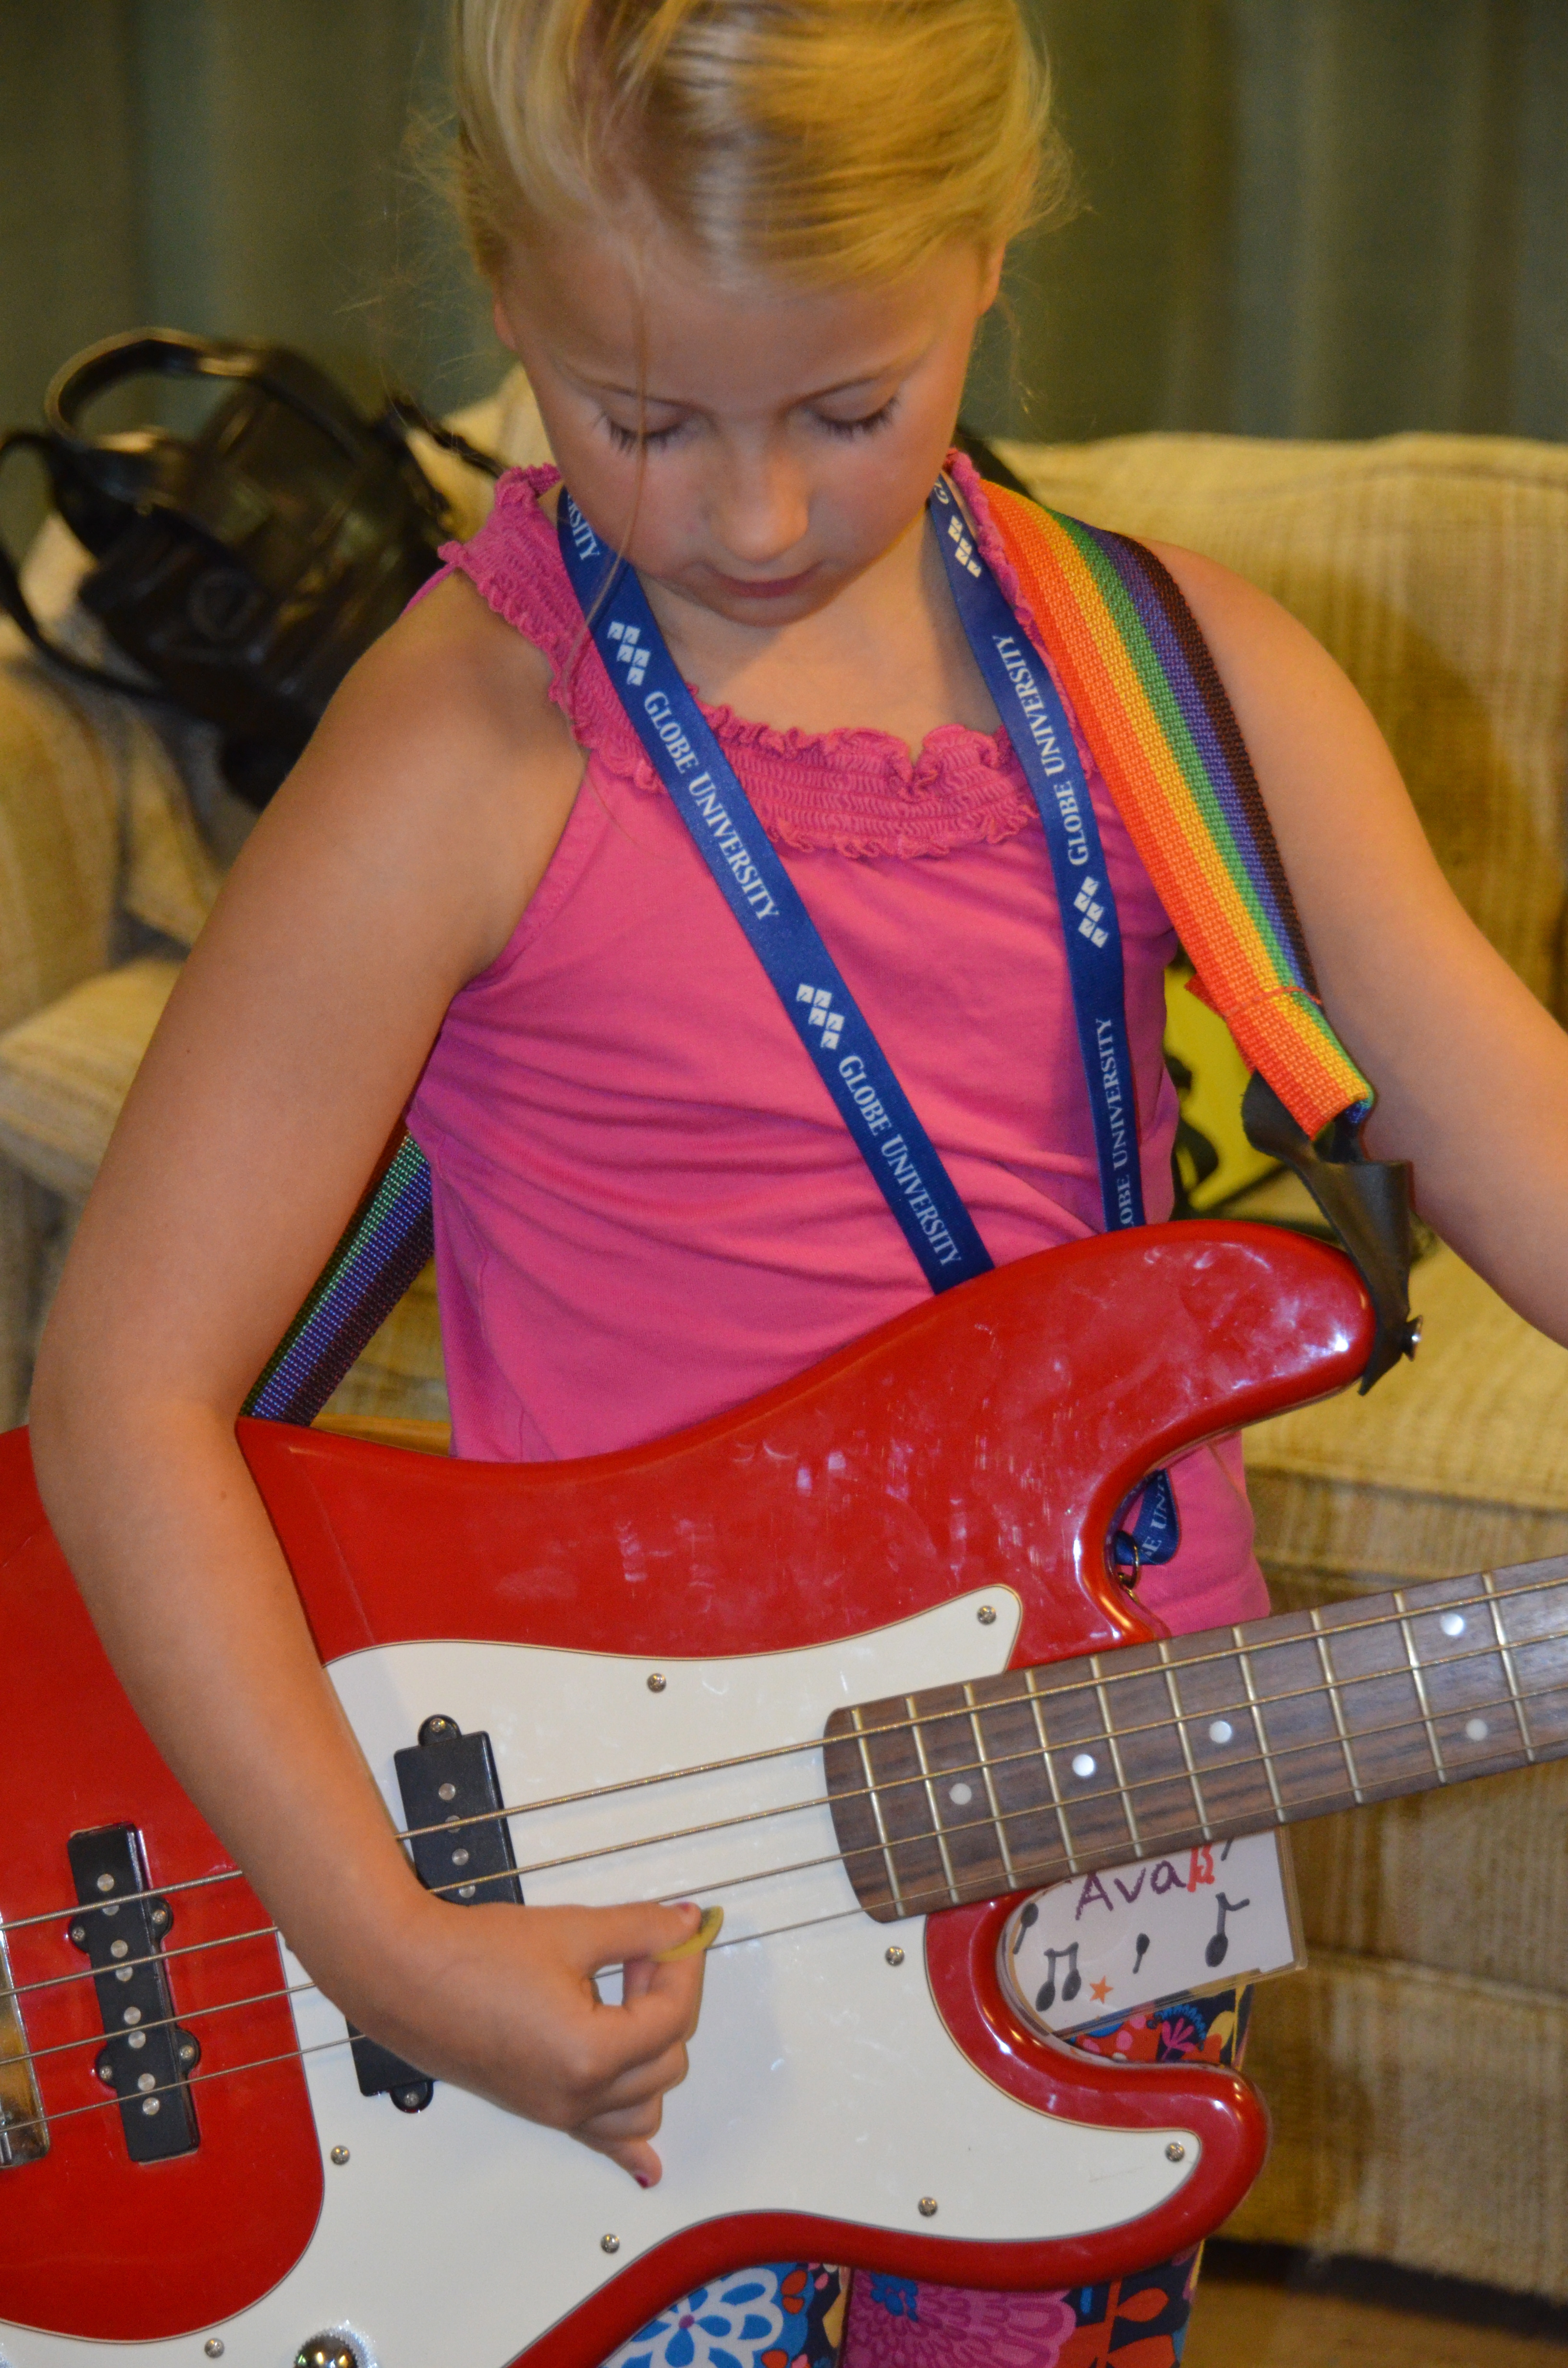 rock camp girls The mission of rock n' roll camp for girls san diego is to bring the community together to empower girls through music lessons, workshops, group activities, and performance rock n' roll camp for girls san diego is a 501(c)(3) non-profit organization.